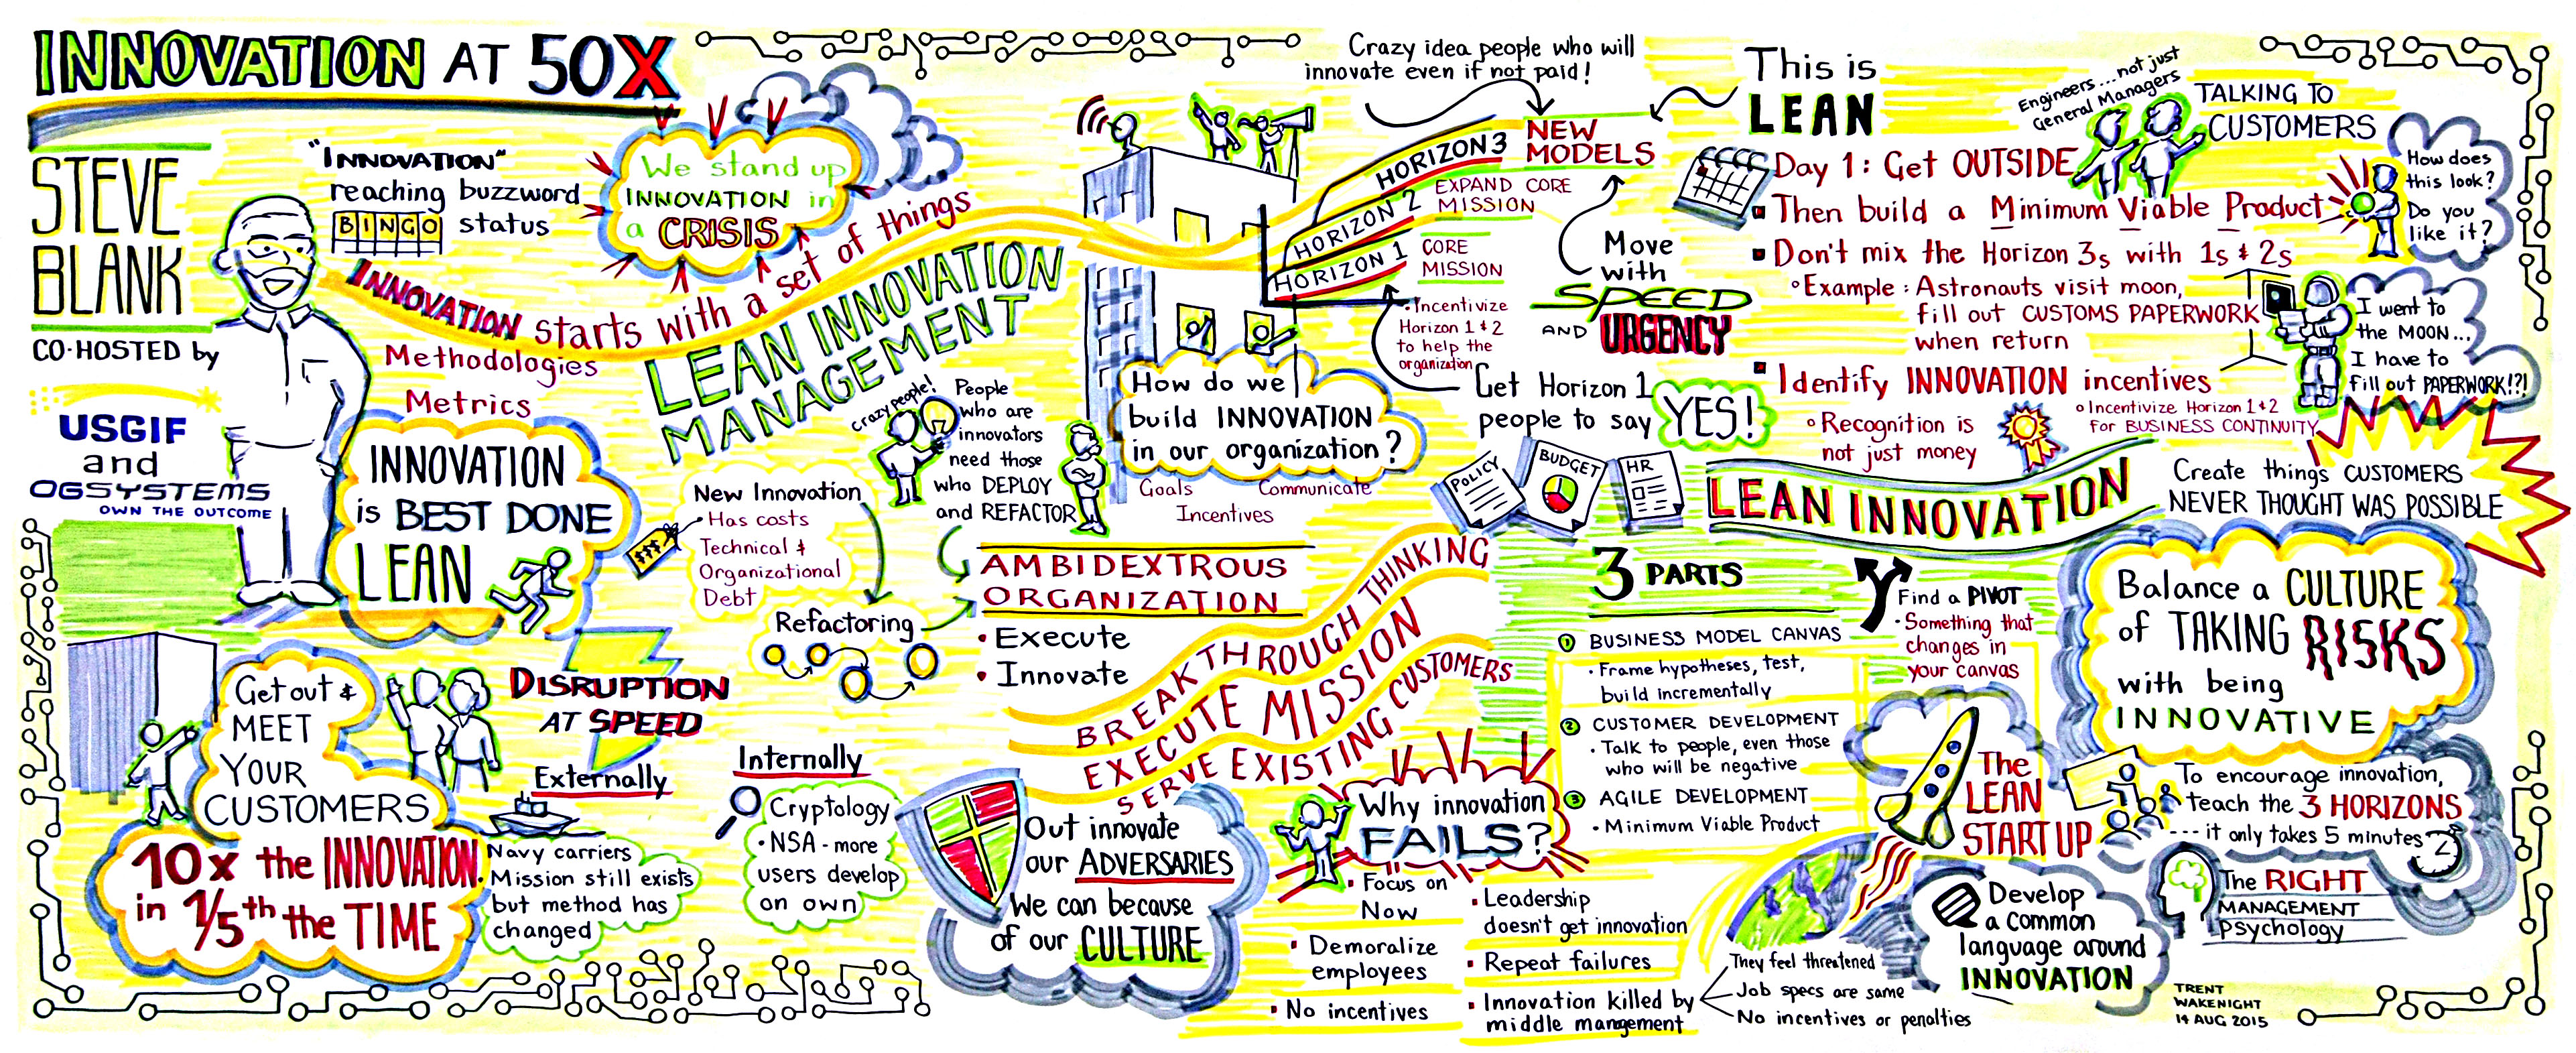 reflection on difficult facilitation For many small-group leaders, one of the more intimidating things we do is facilitating a group discussion very few of us feel like we'll have all the right answers, or that we can handle whatever curve balls will be thrown our way (and there will be some.